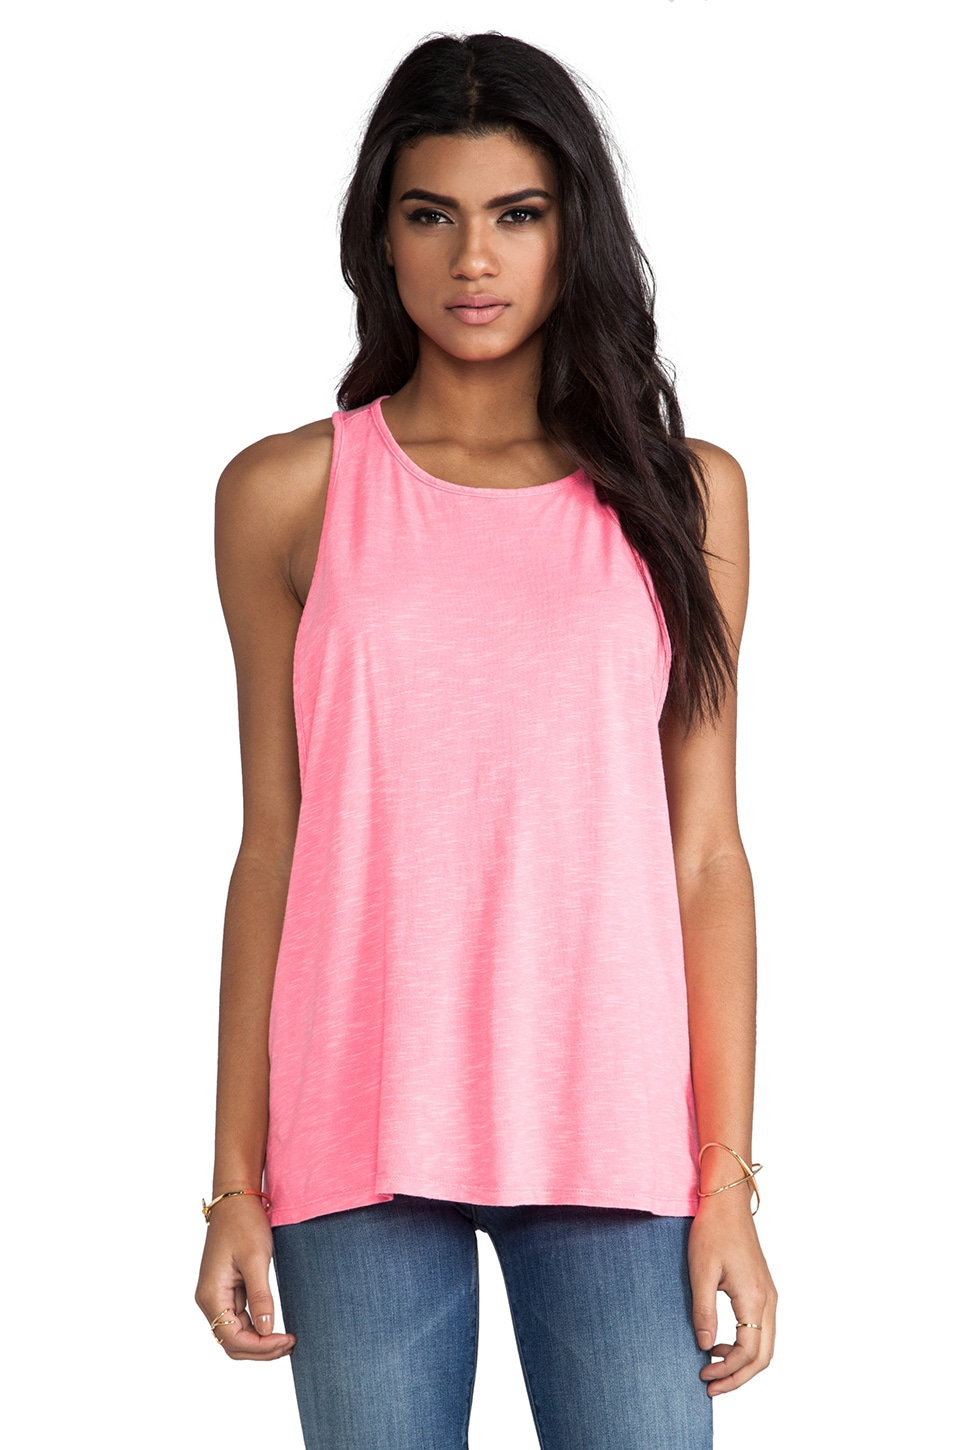 Bobi Slub Muscle Tank in Neon Candy